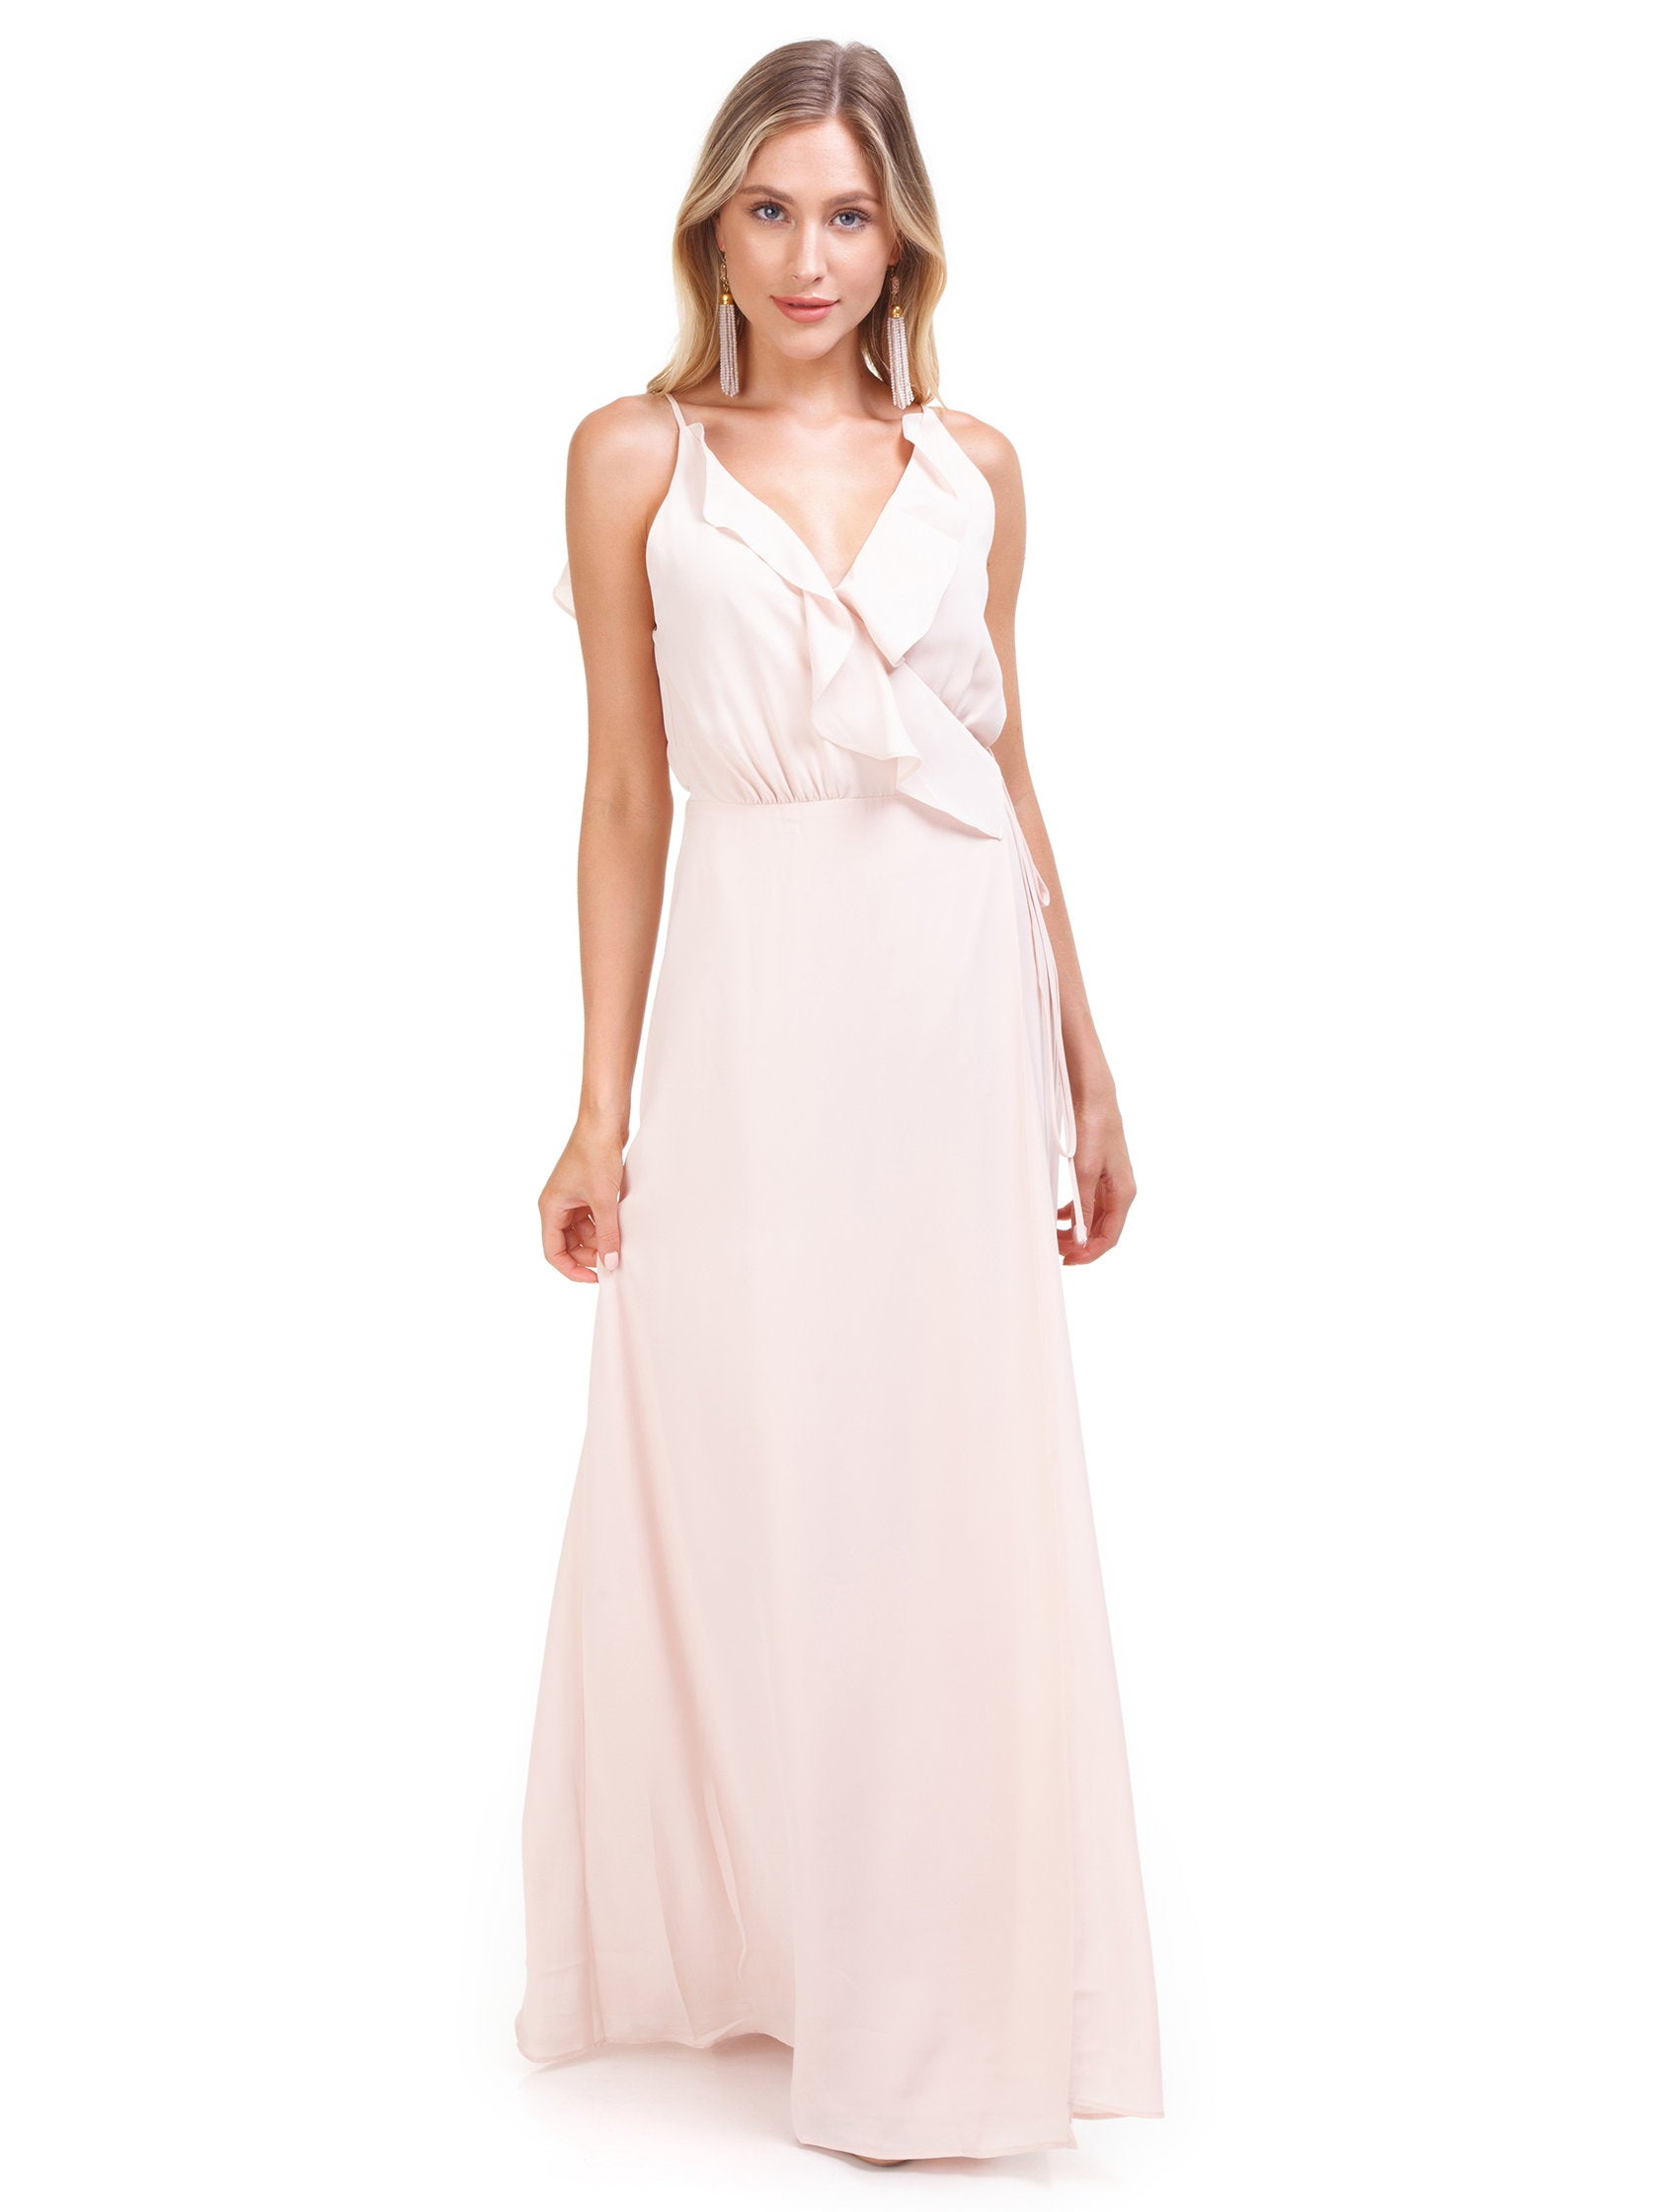 Girl outfit in a dress rental from WAYF called Jamie Ruffle Wrap Gown